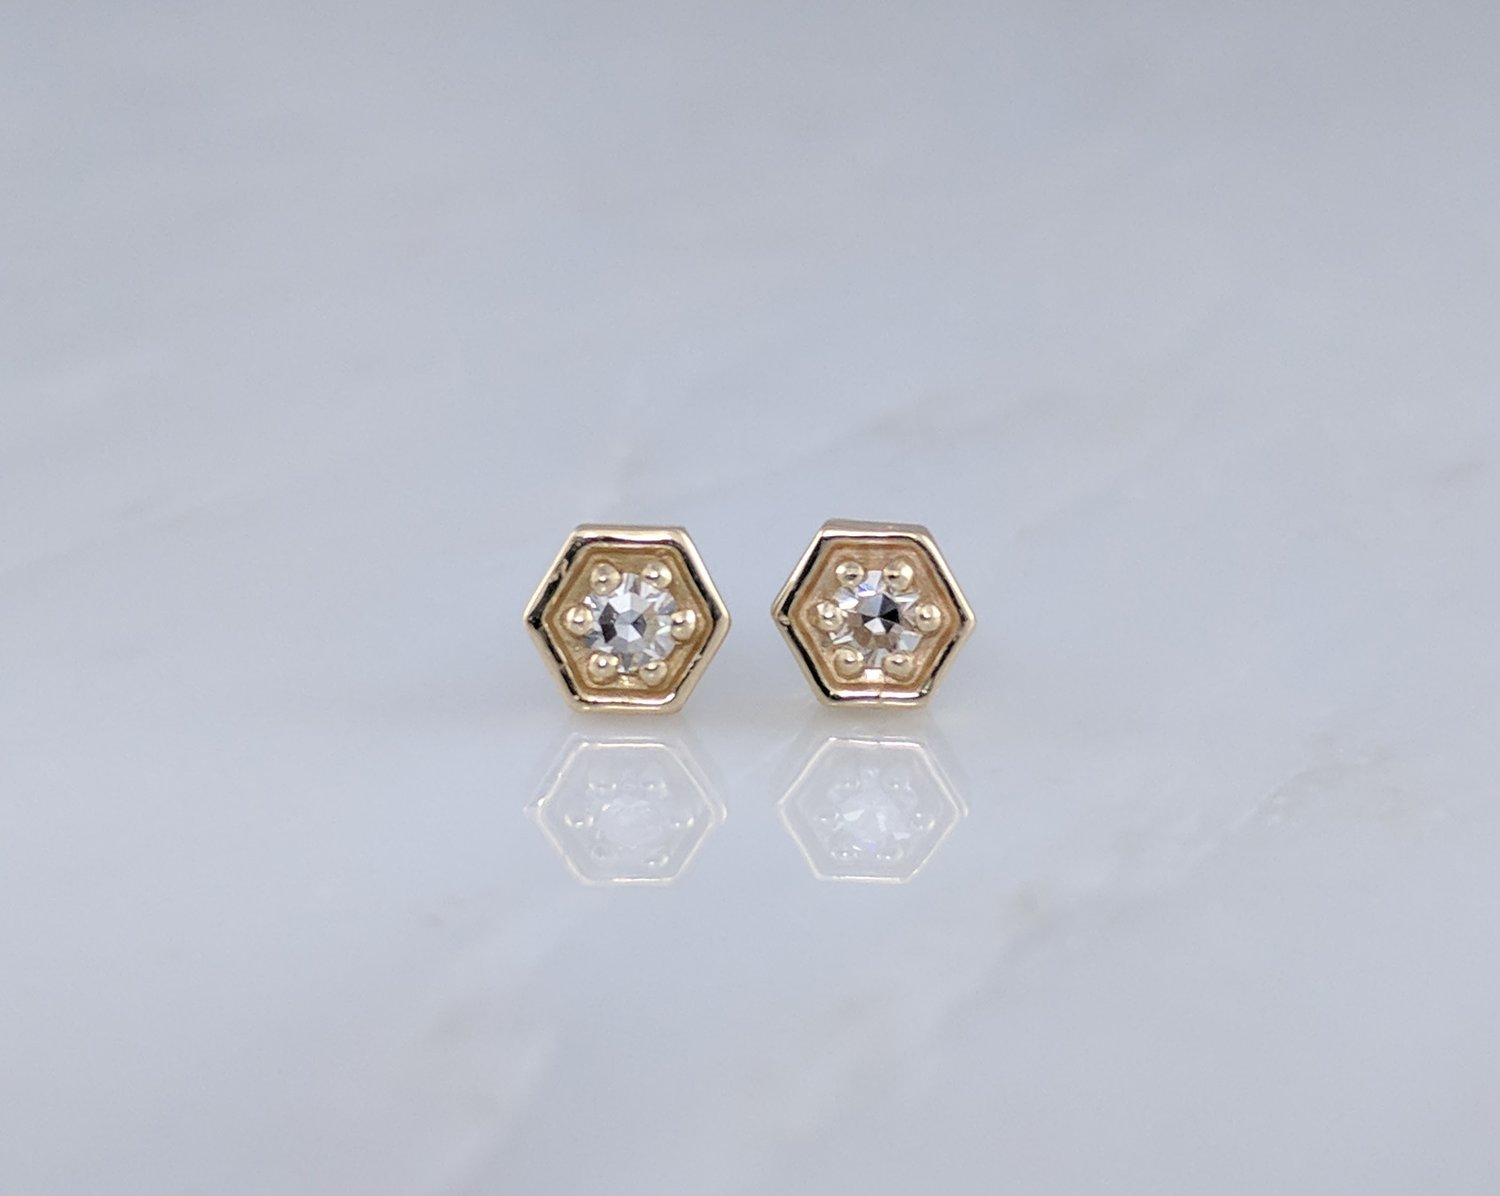 earrings quartz stud diamond gold gallery kalan jewelry night normal product black champagne suzanne yellow lyst